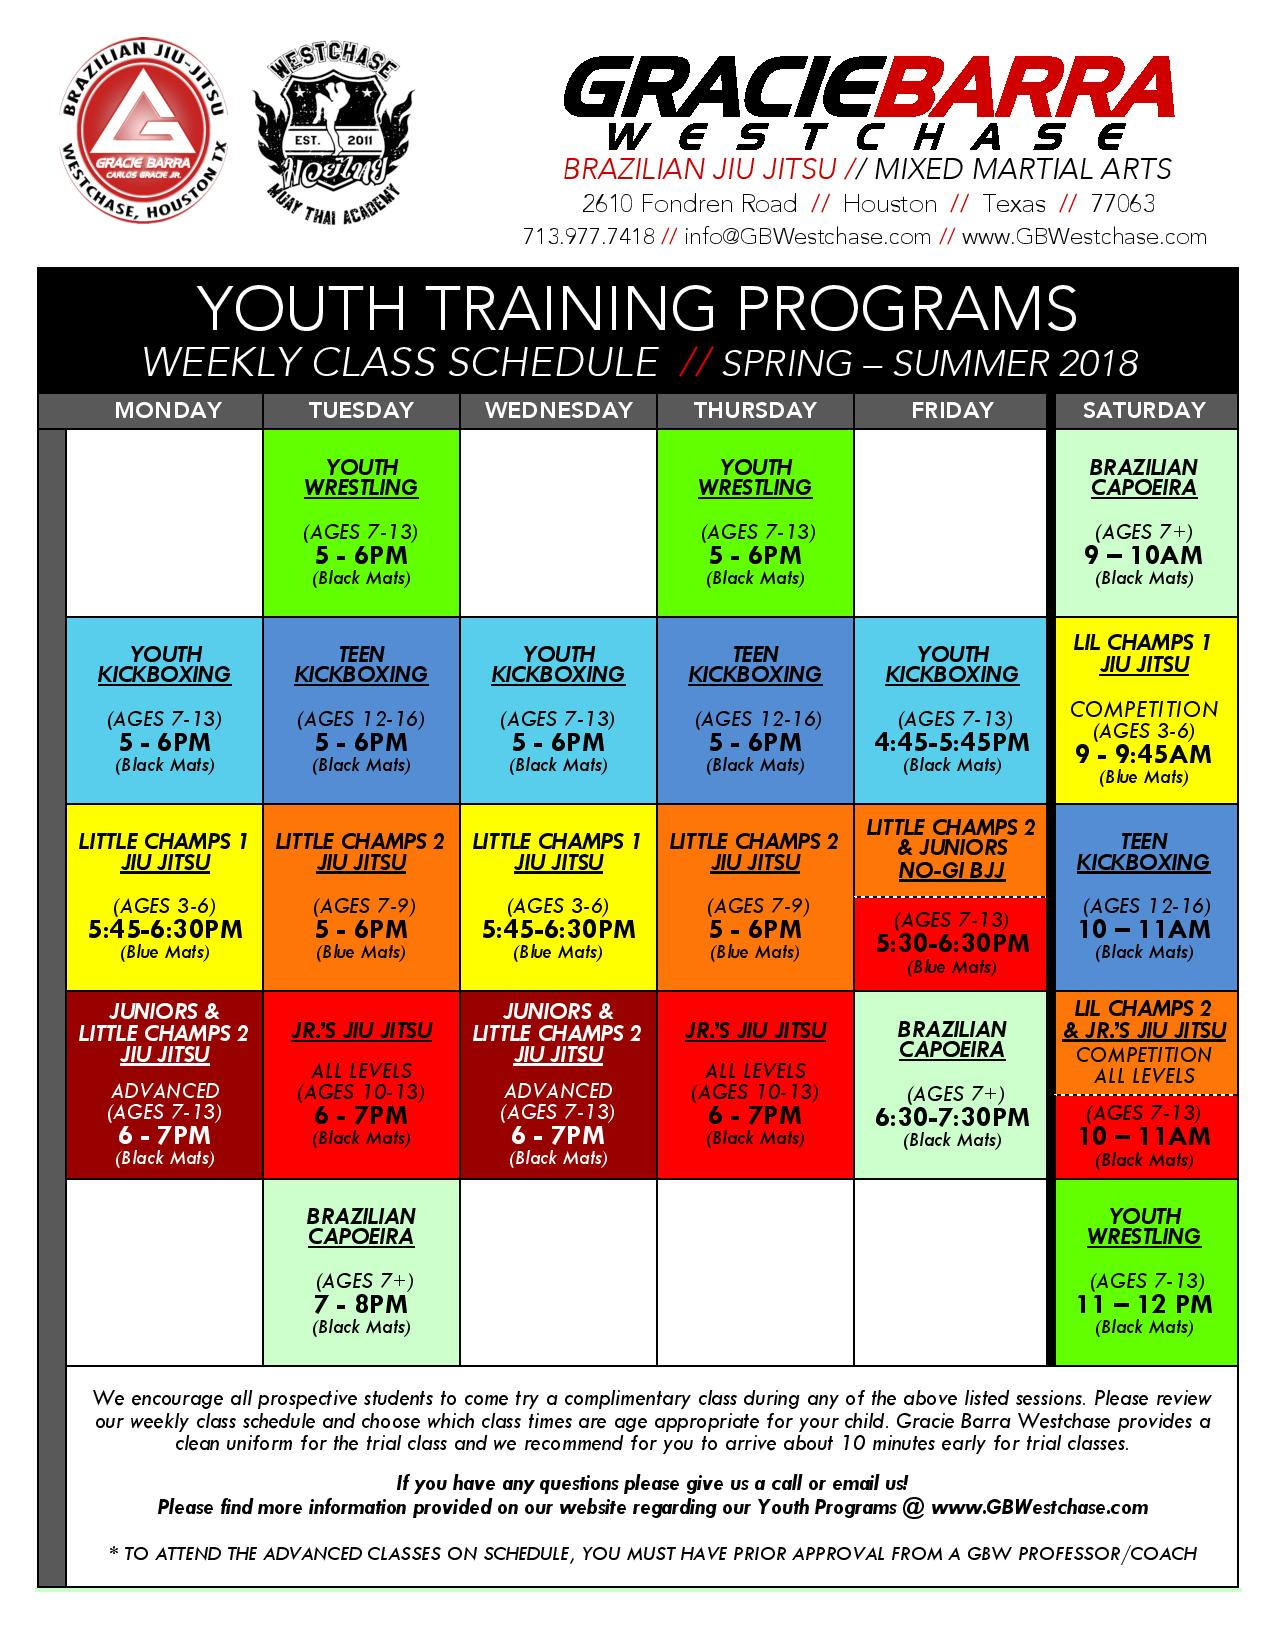 Training Schedule in houston